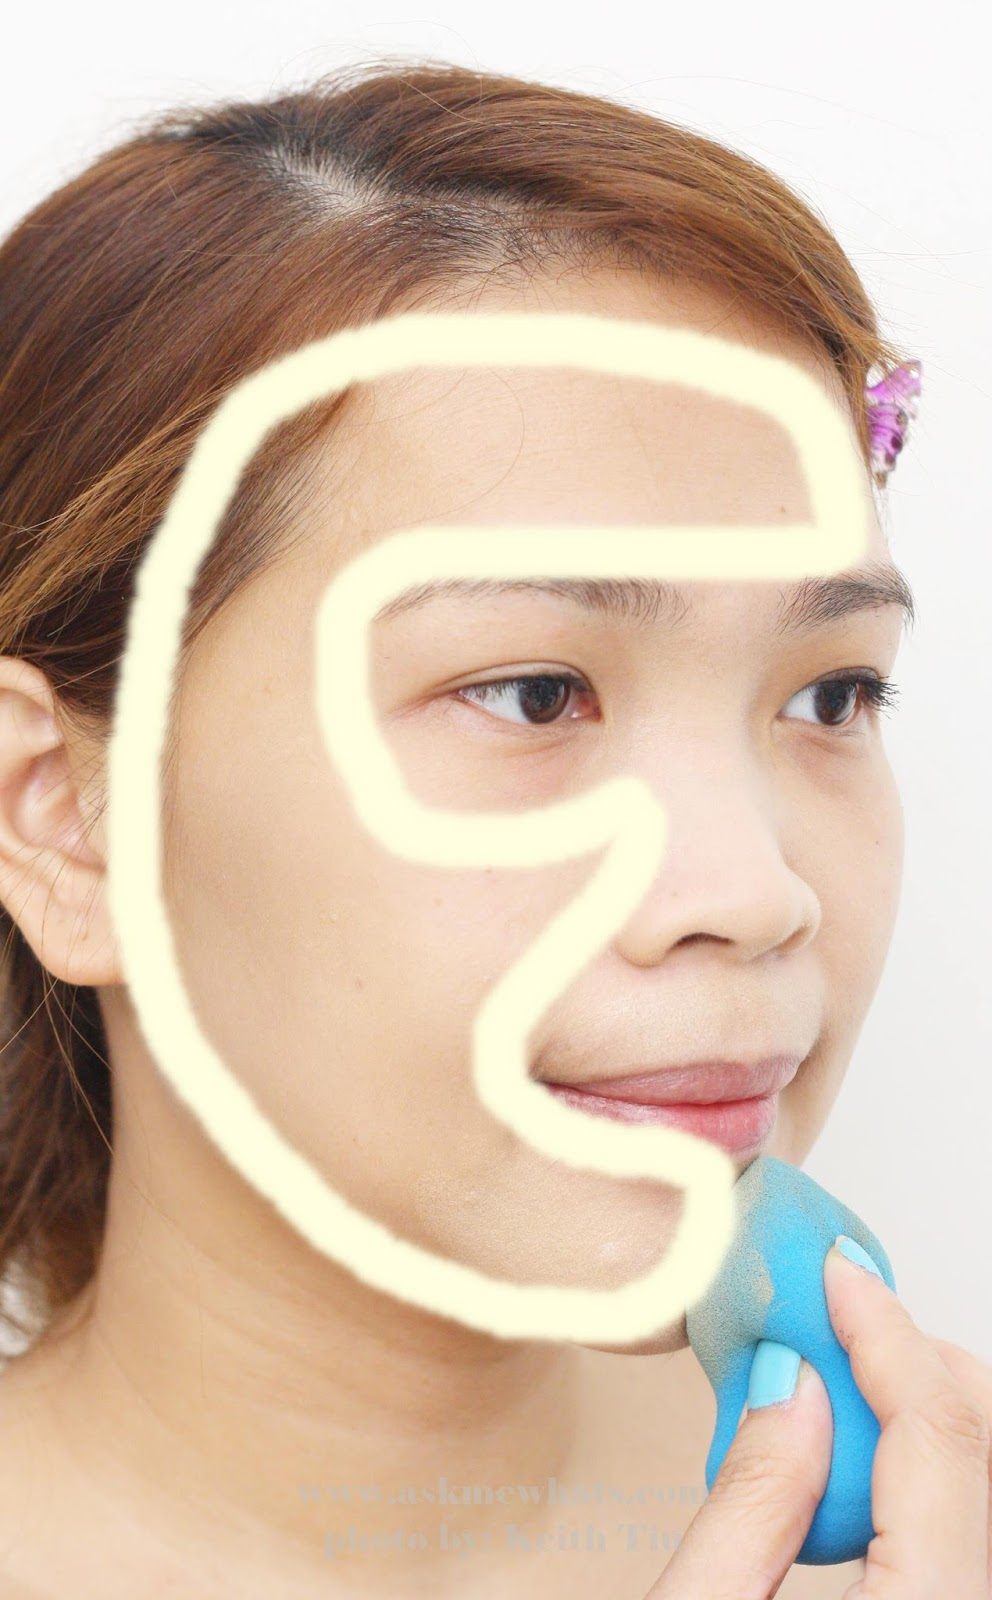 Foundation Application On Pinterest How To Prevent Undereye Make Up From  Creasing Askmewhats Top Beauty Blogger